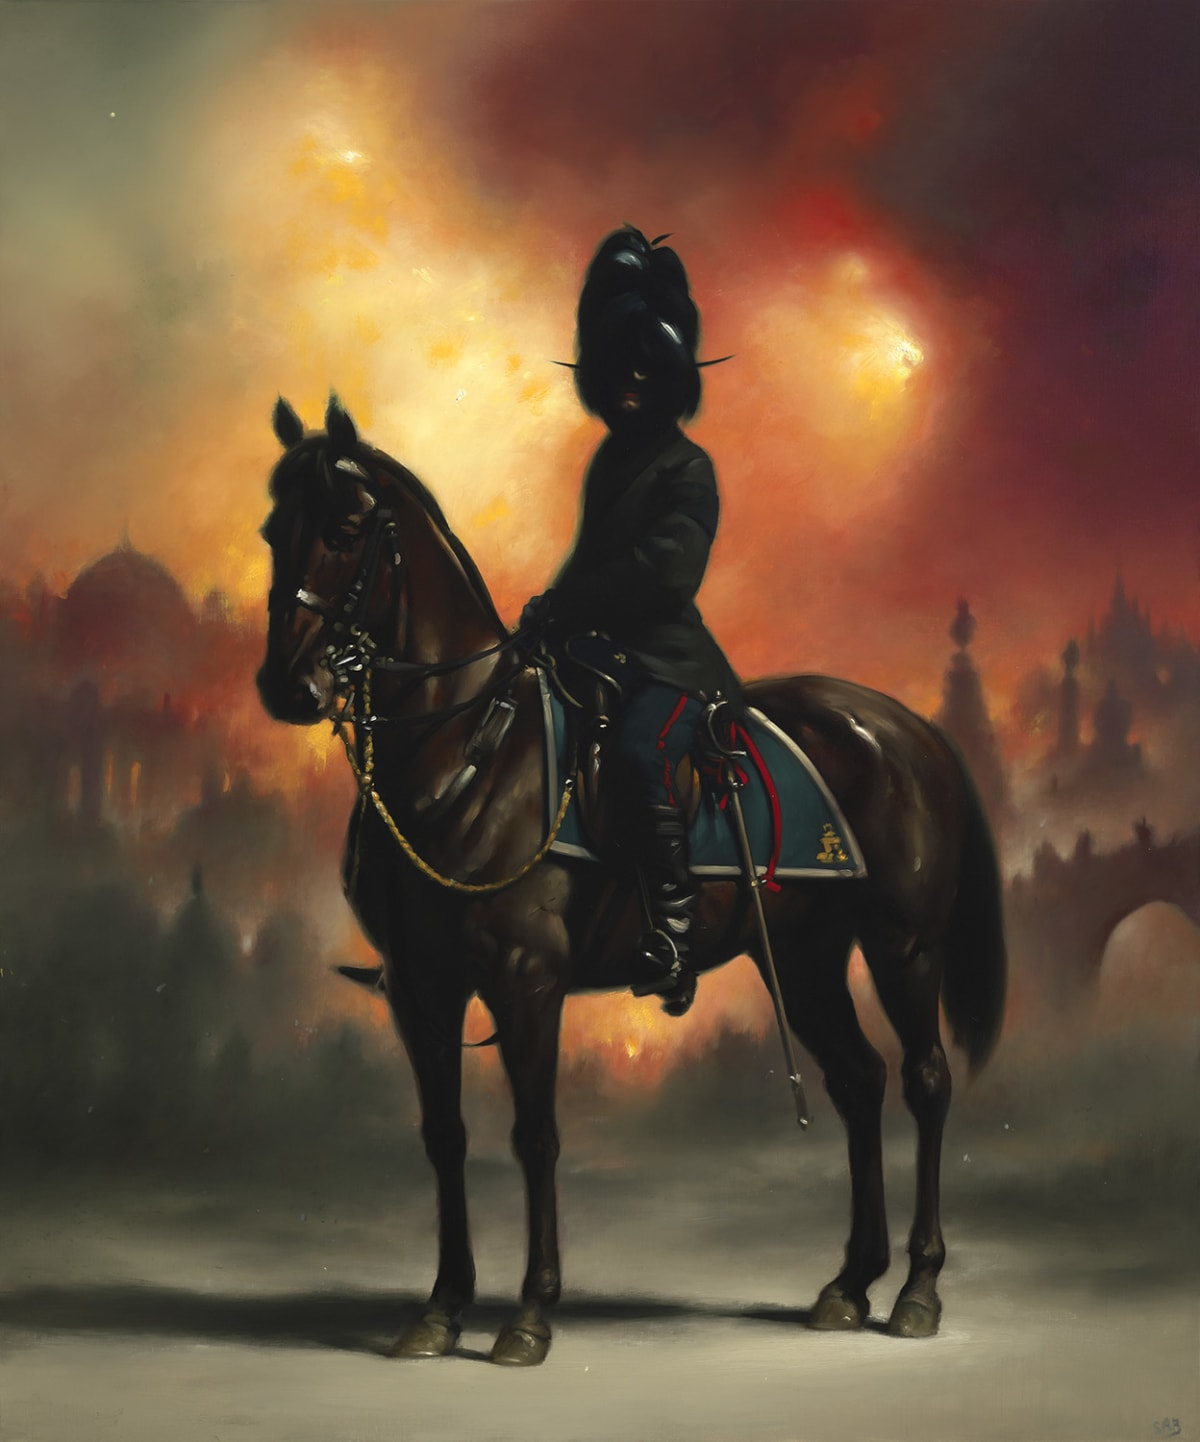 Stephen Appleby-Barr, Dark Messenger with a Burning City, 2019